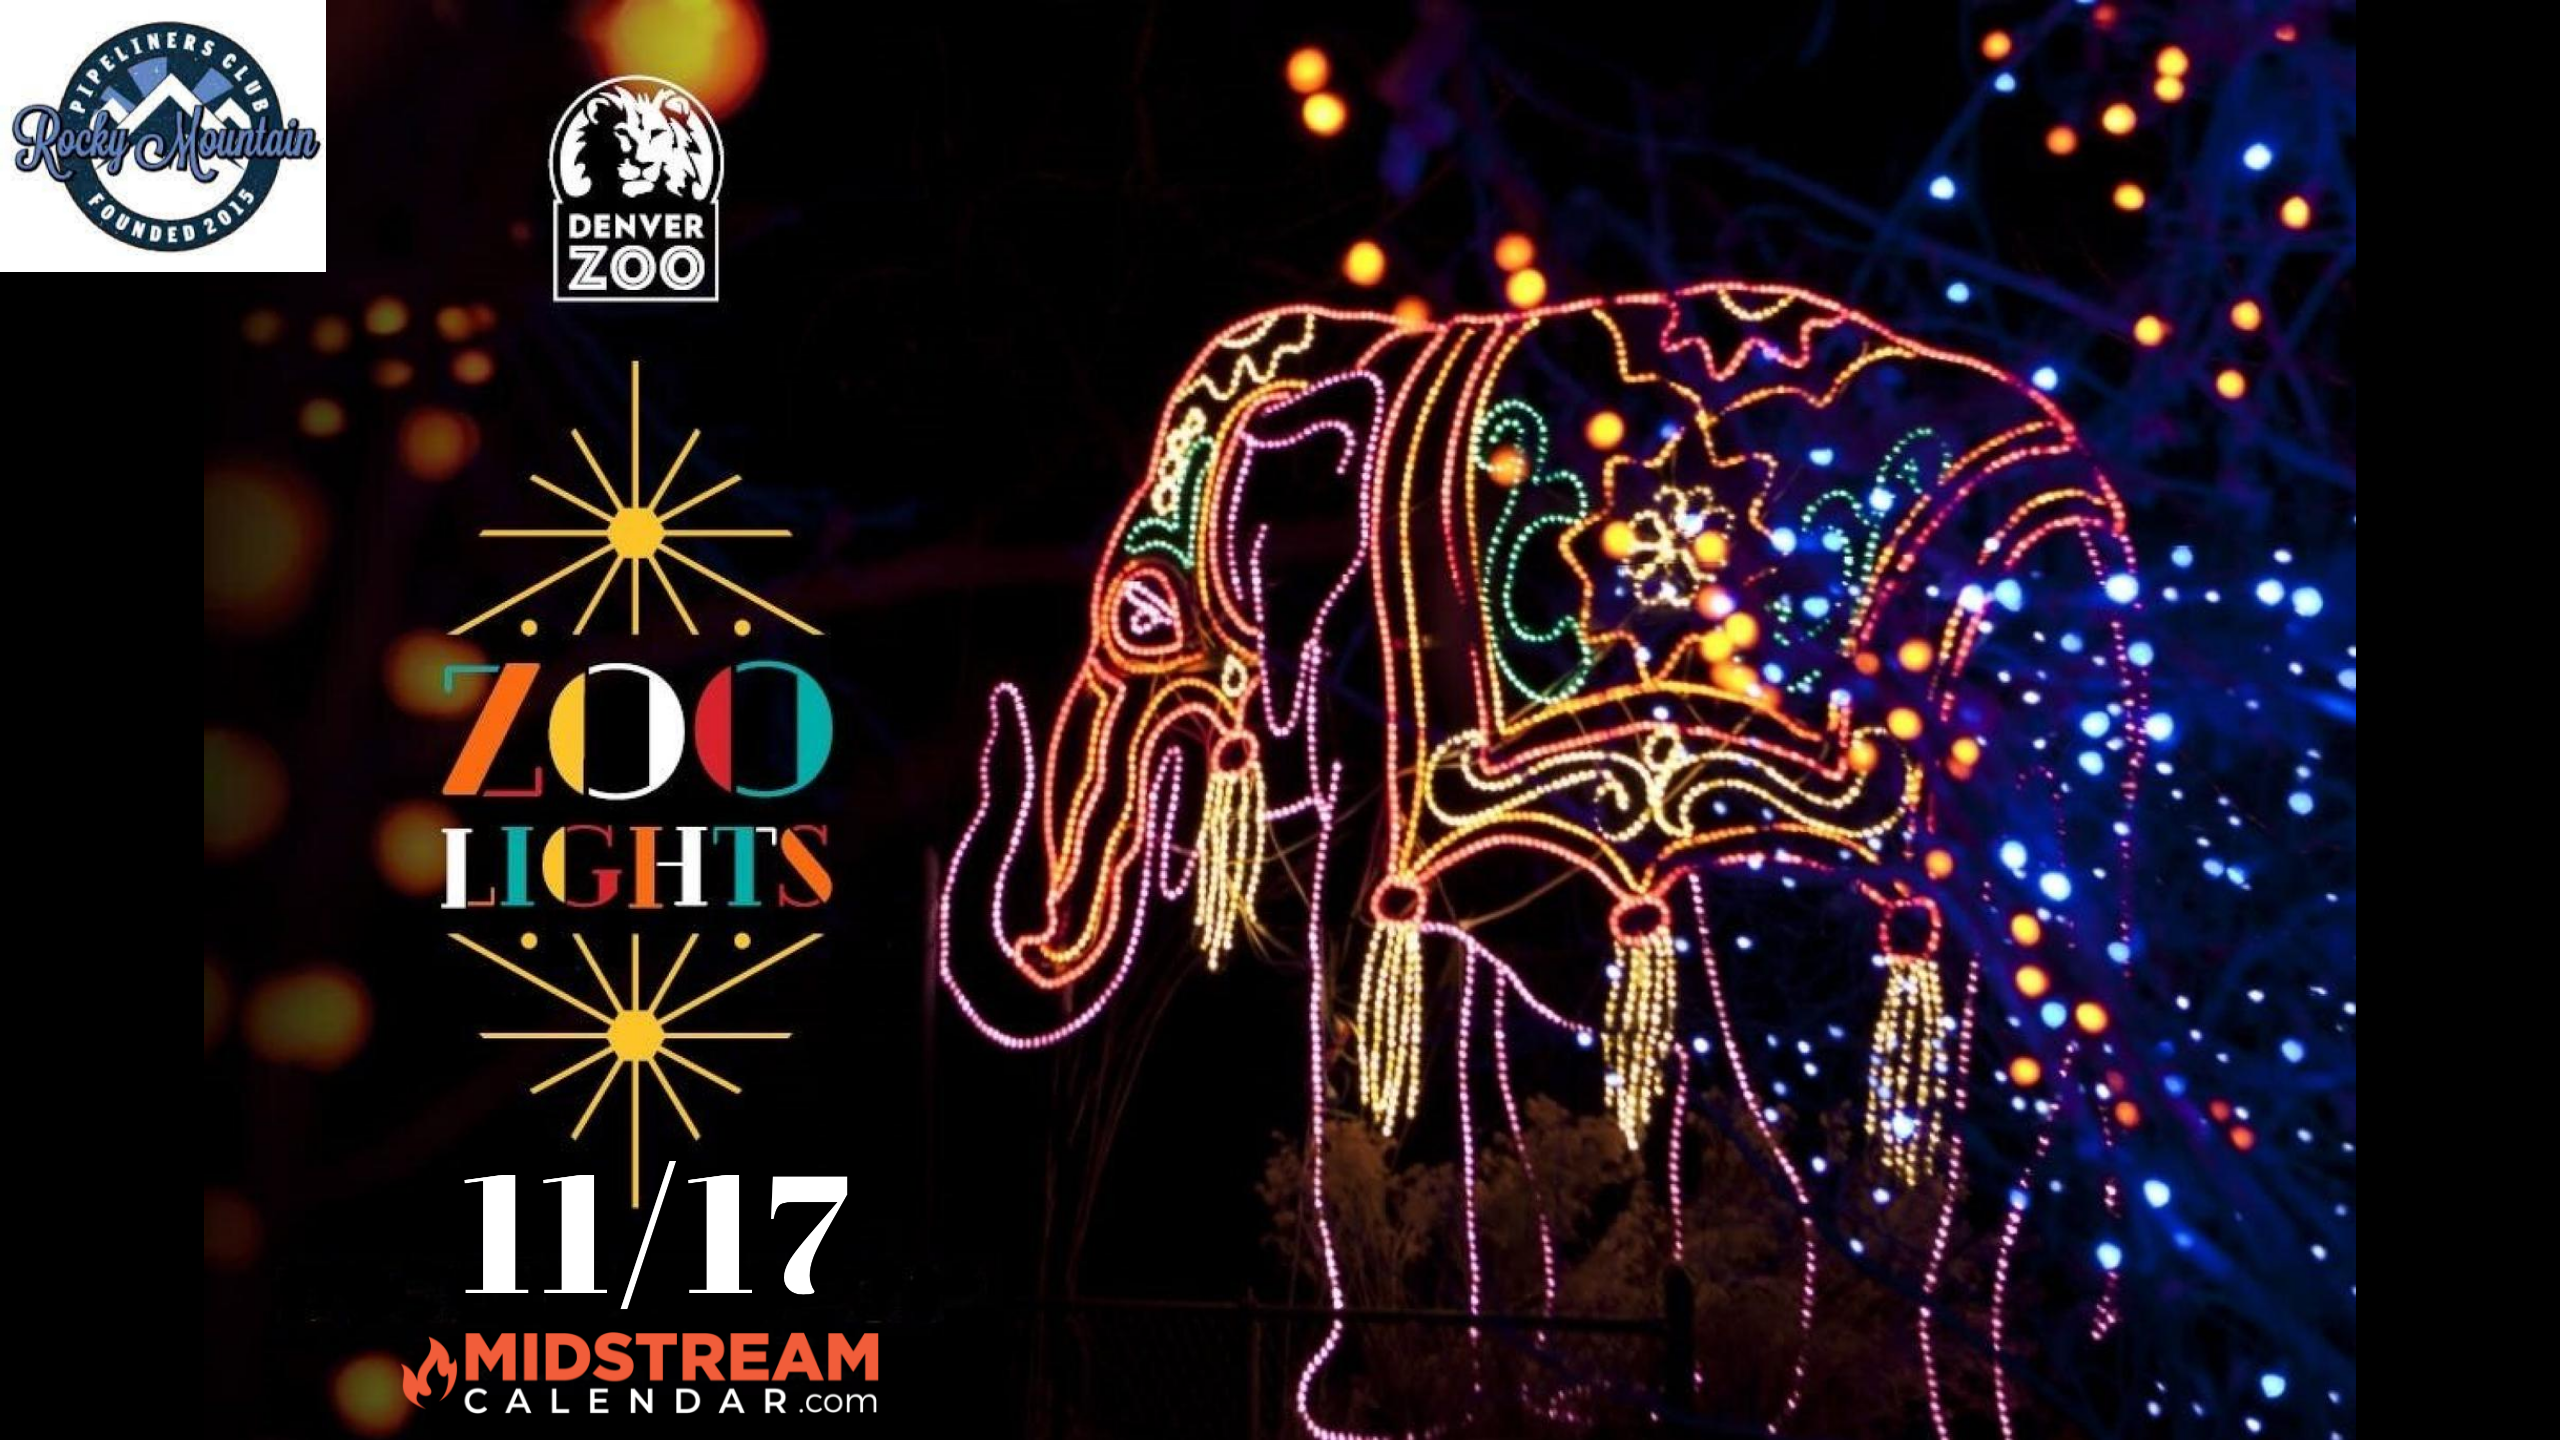 Rocky Mountain Pipeliners Club Zoo Lights 2021